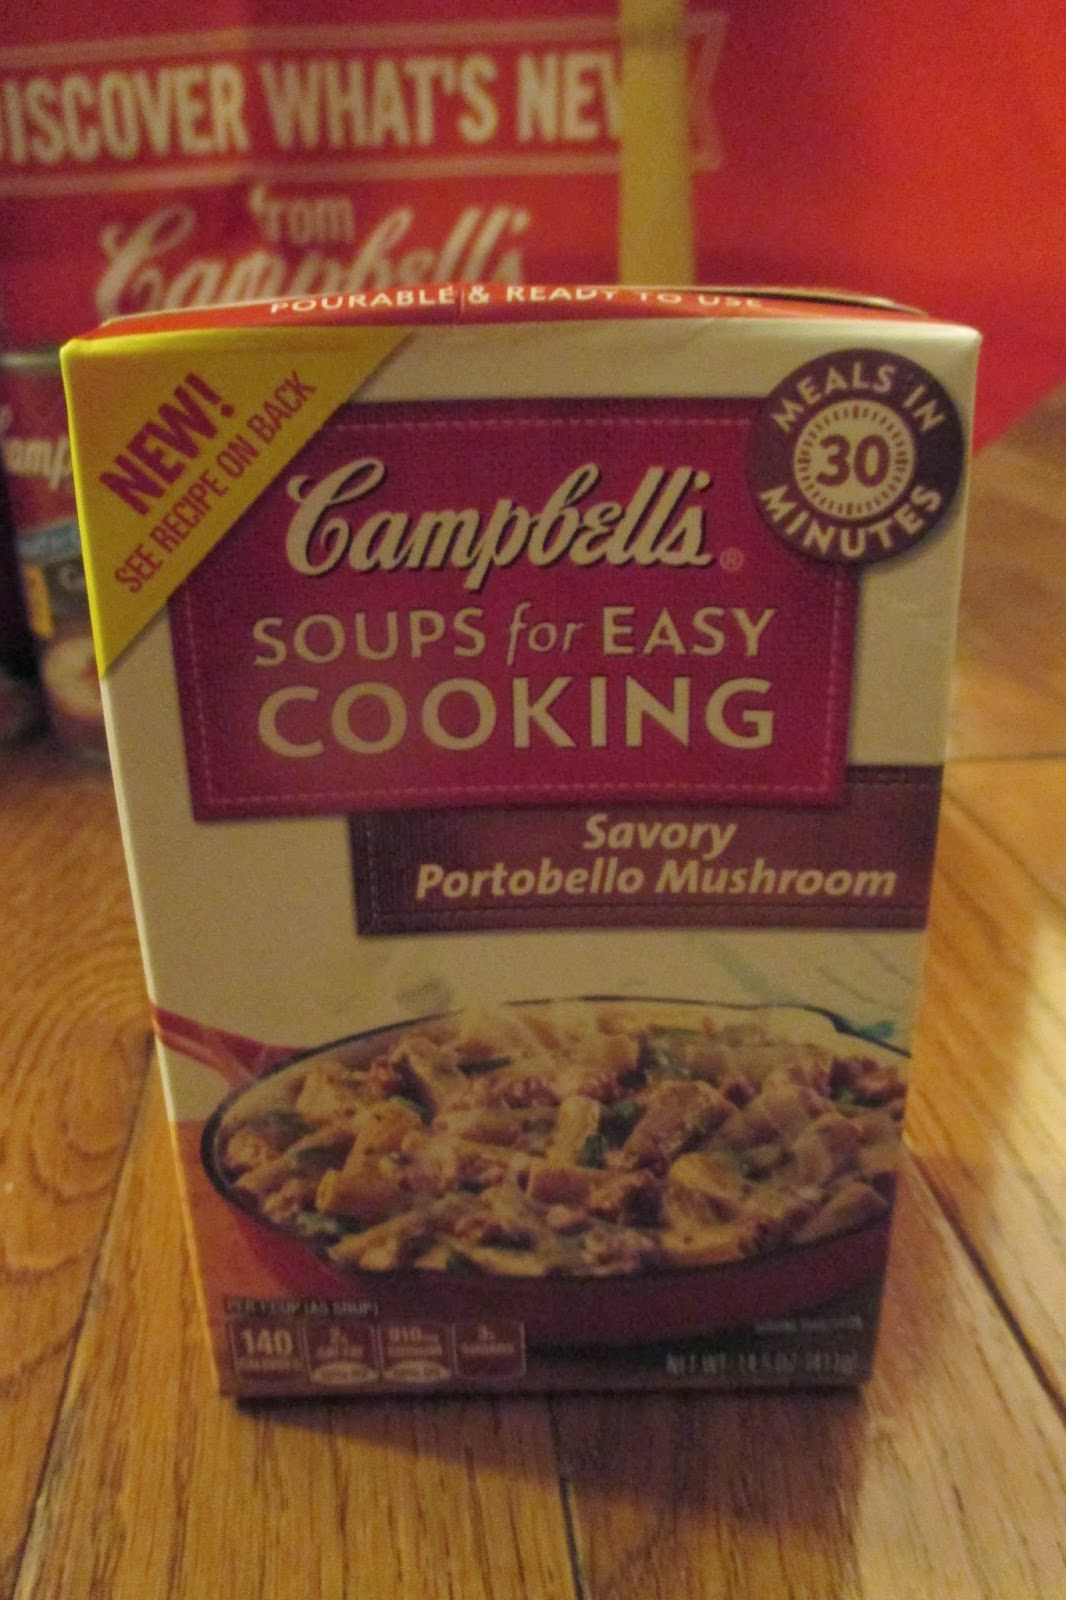 Campbell's Soups for Easy Cooking in the Savory Portobello Mushroom